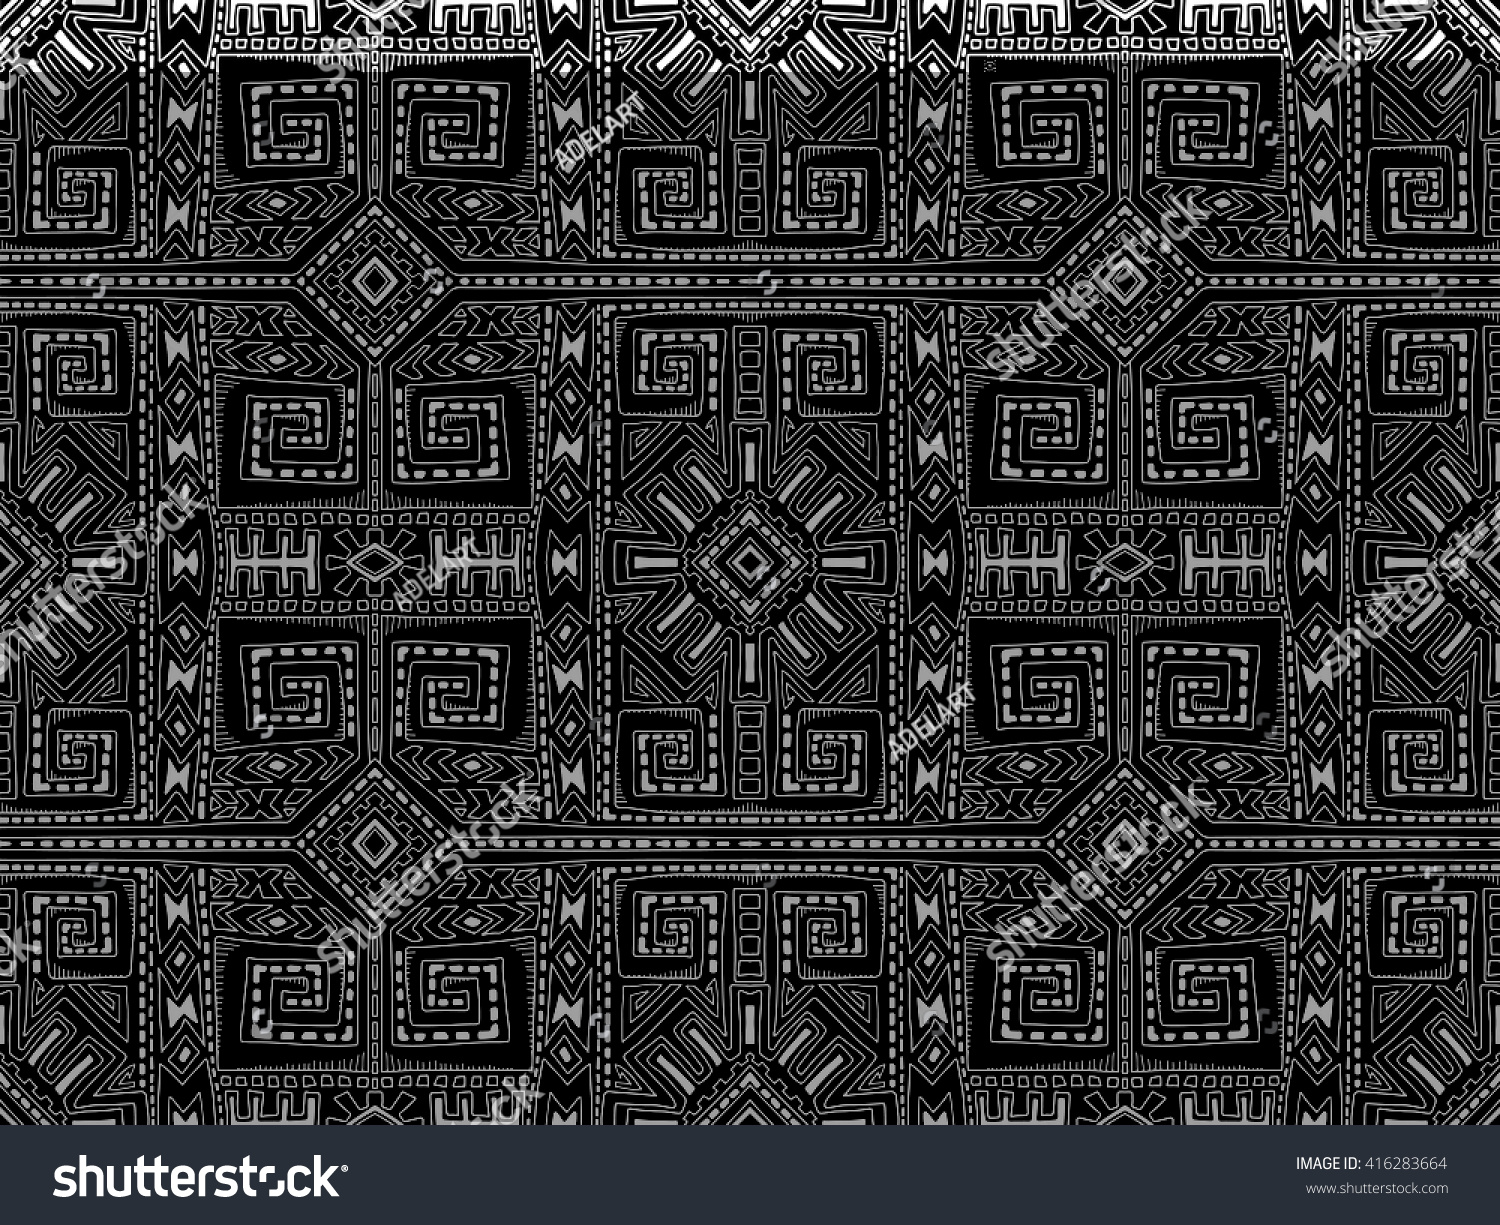 Background geometric mexican patterns seamless vector zigzag maya - Aztec Background Abstract Tribal Ornament Black And White Pattern Doodle Maya Style Ornament